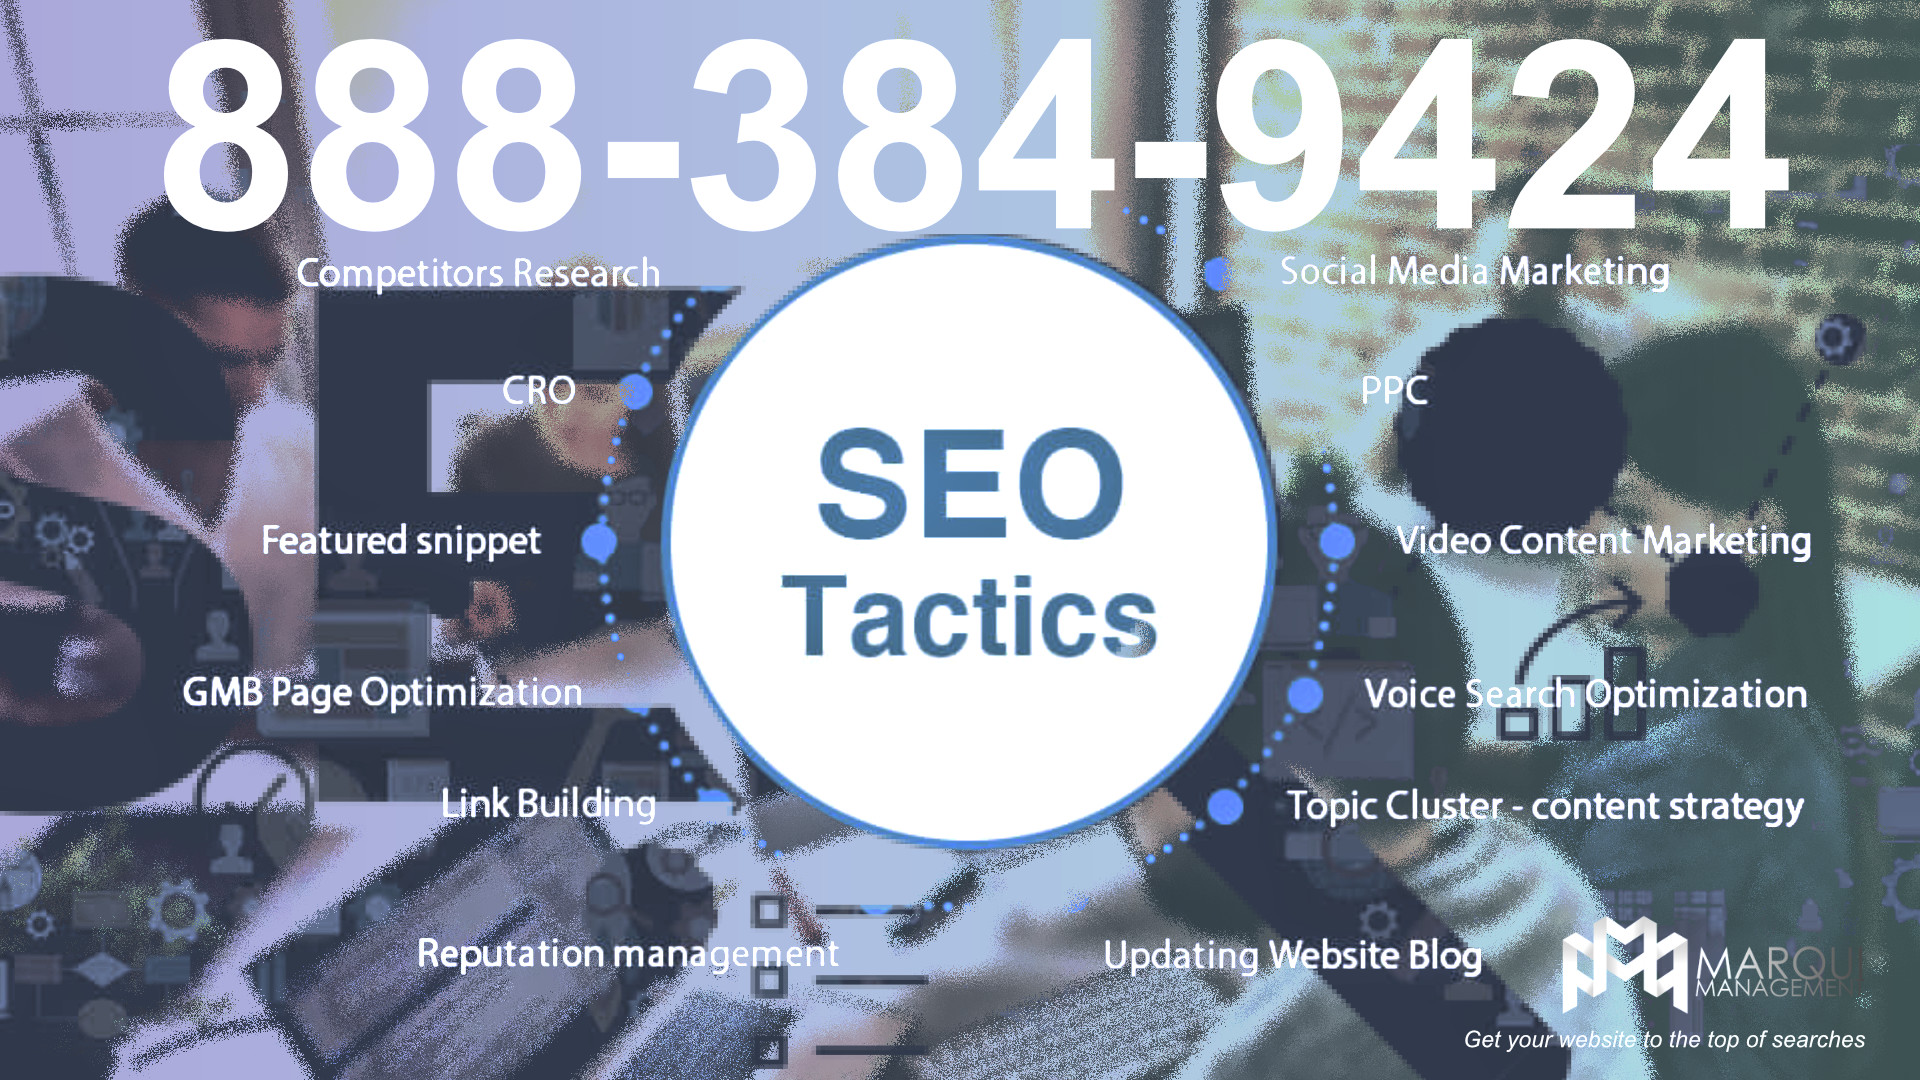 seo-marketing-tactics-search-engine-optimization-consultants-marqui-management-top-agencies-ppc-gmb-reputation-management-6